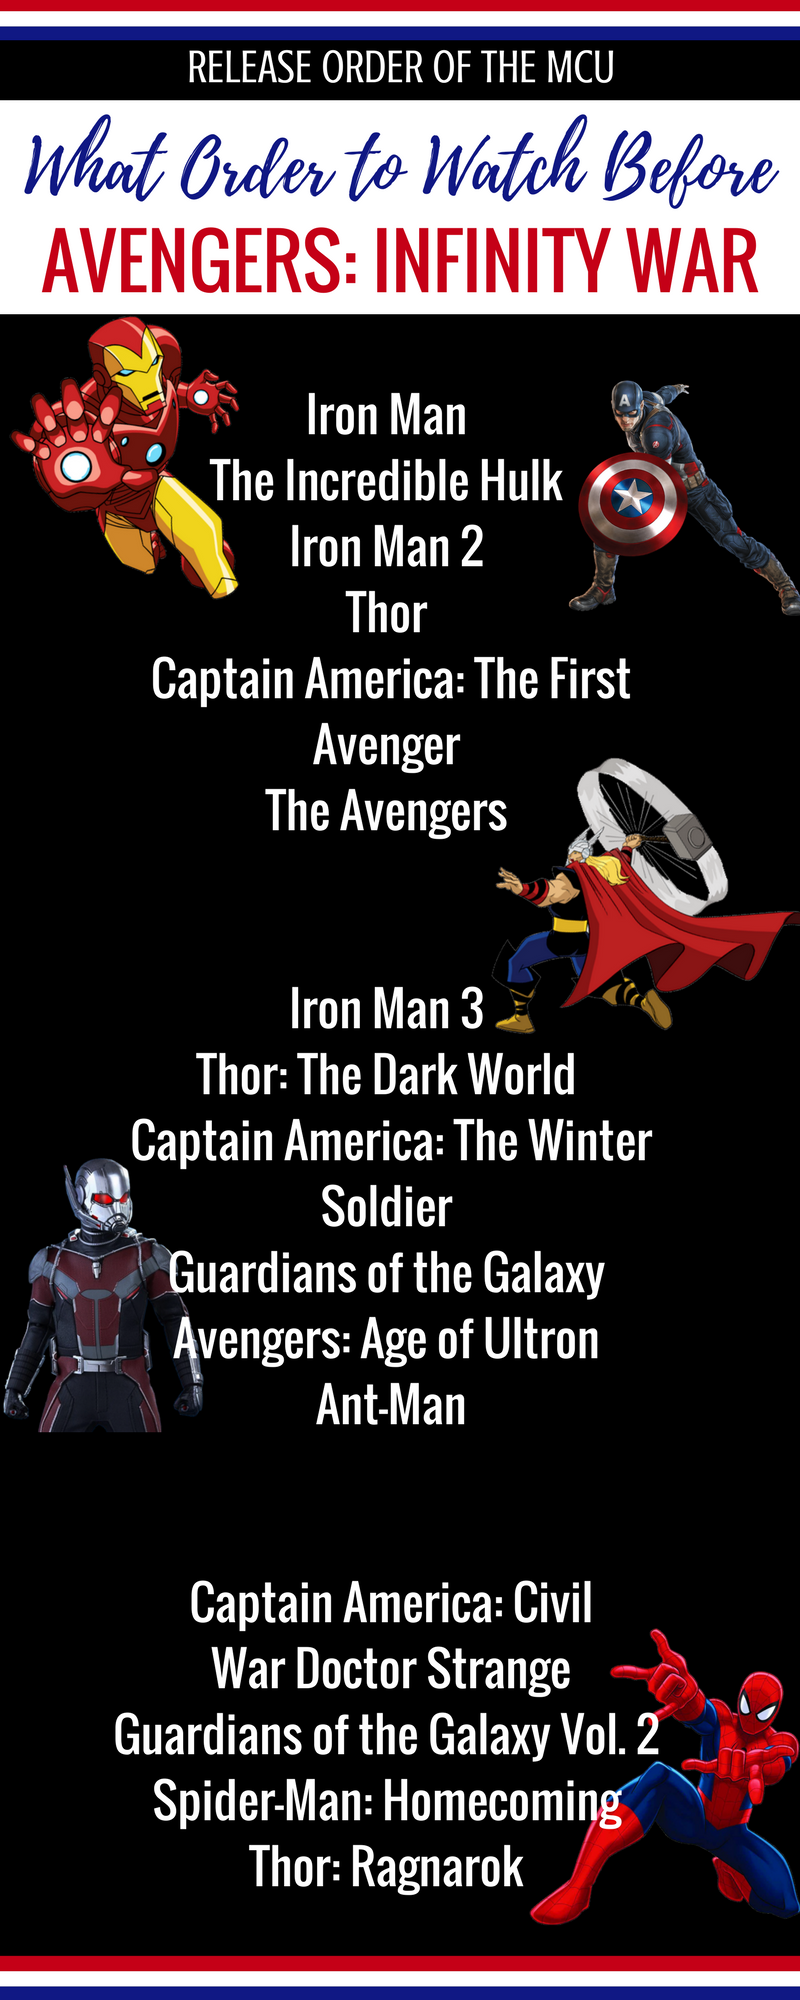 Marvel Movies to Watch In Order Before Avengers Infinity War, Marvel Movies timeline in order of release in the theaters! A beginners guide to Marvel Movies and the MCU. #MarvelMovies #InfinityWar #MCU #Avengers avengers movies in order